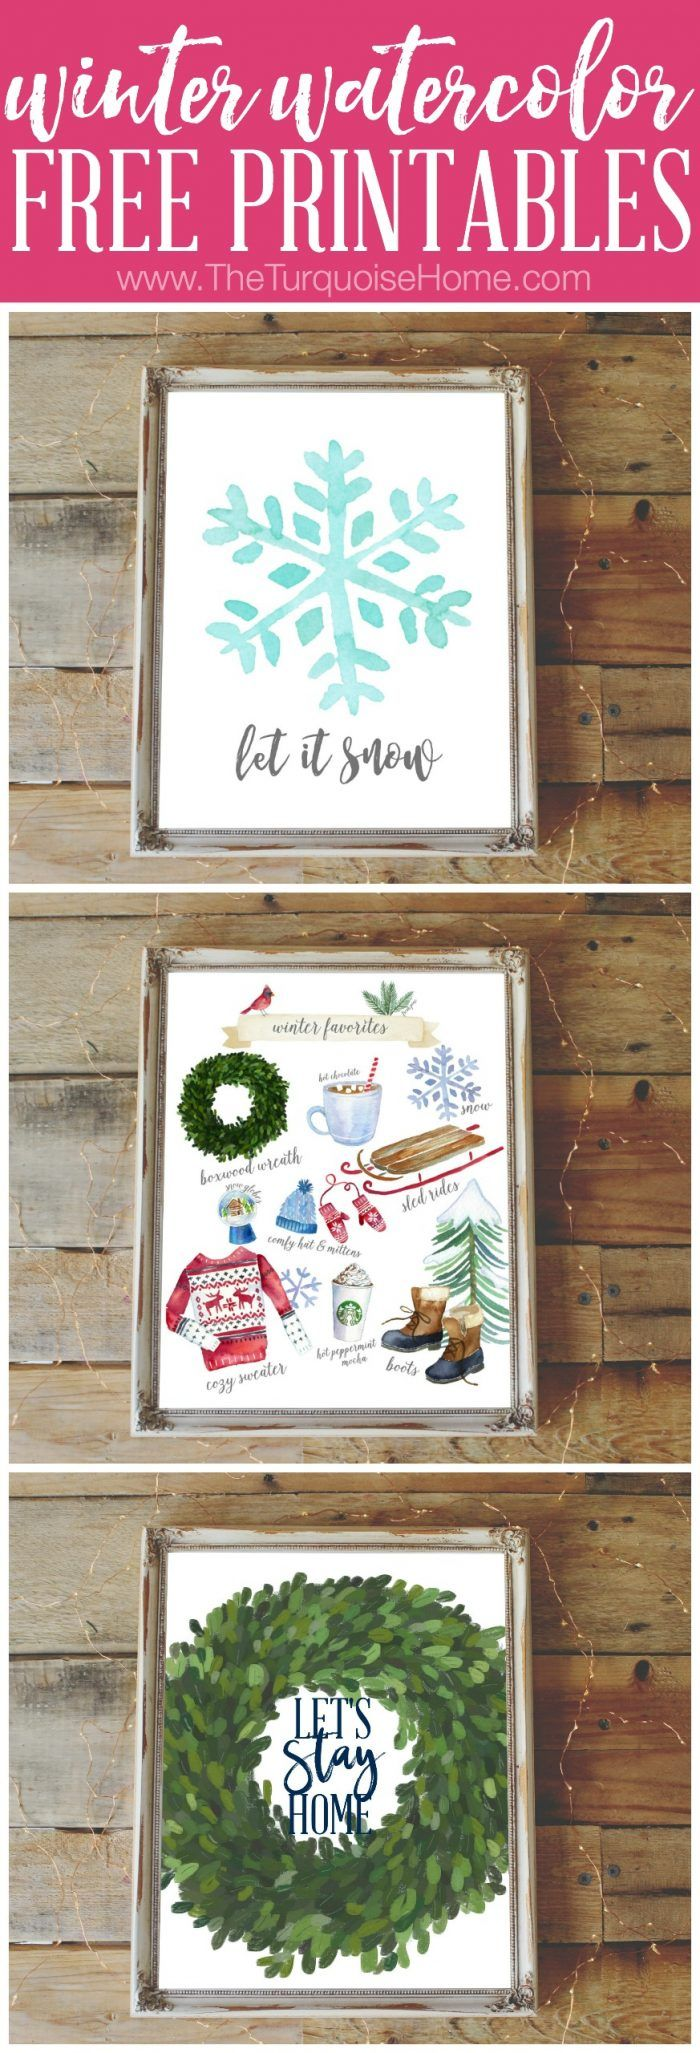 Winter Favorites Free Printables - just for you!! Yay!